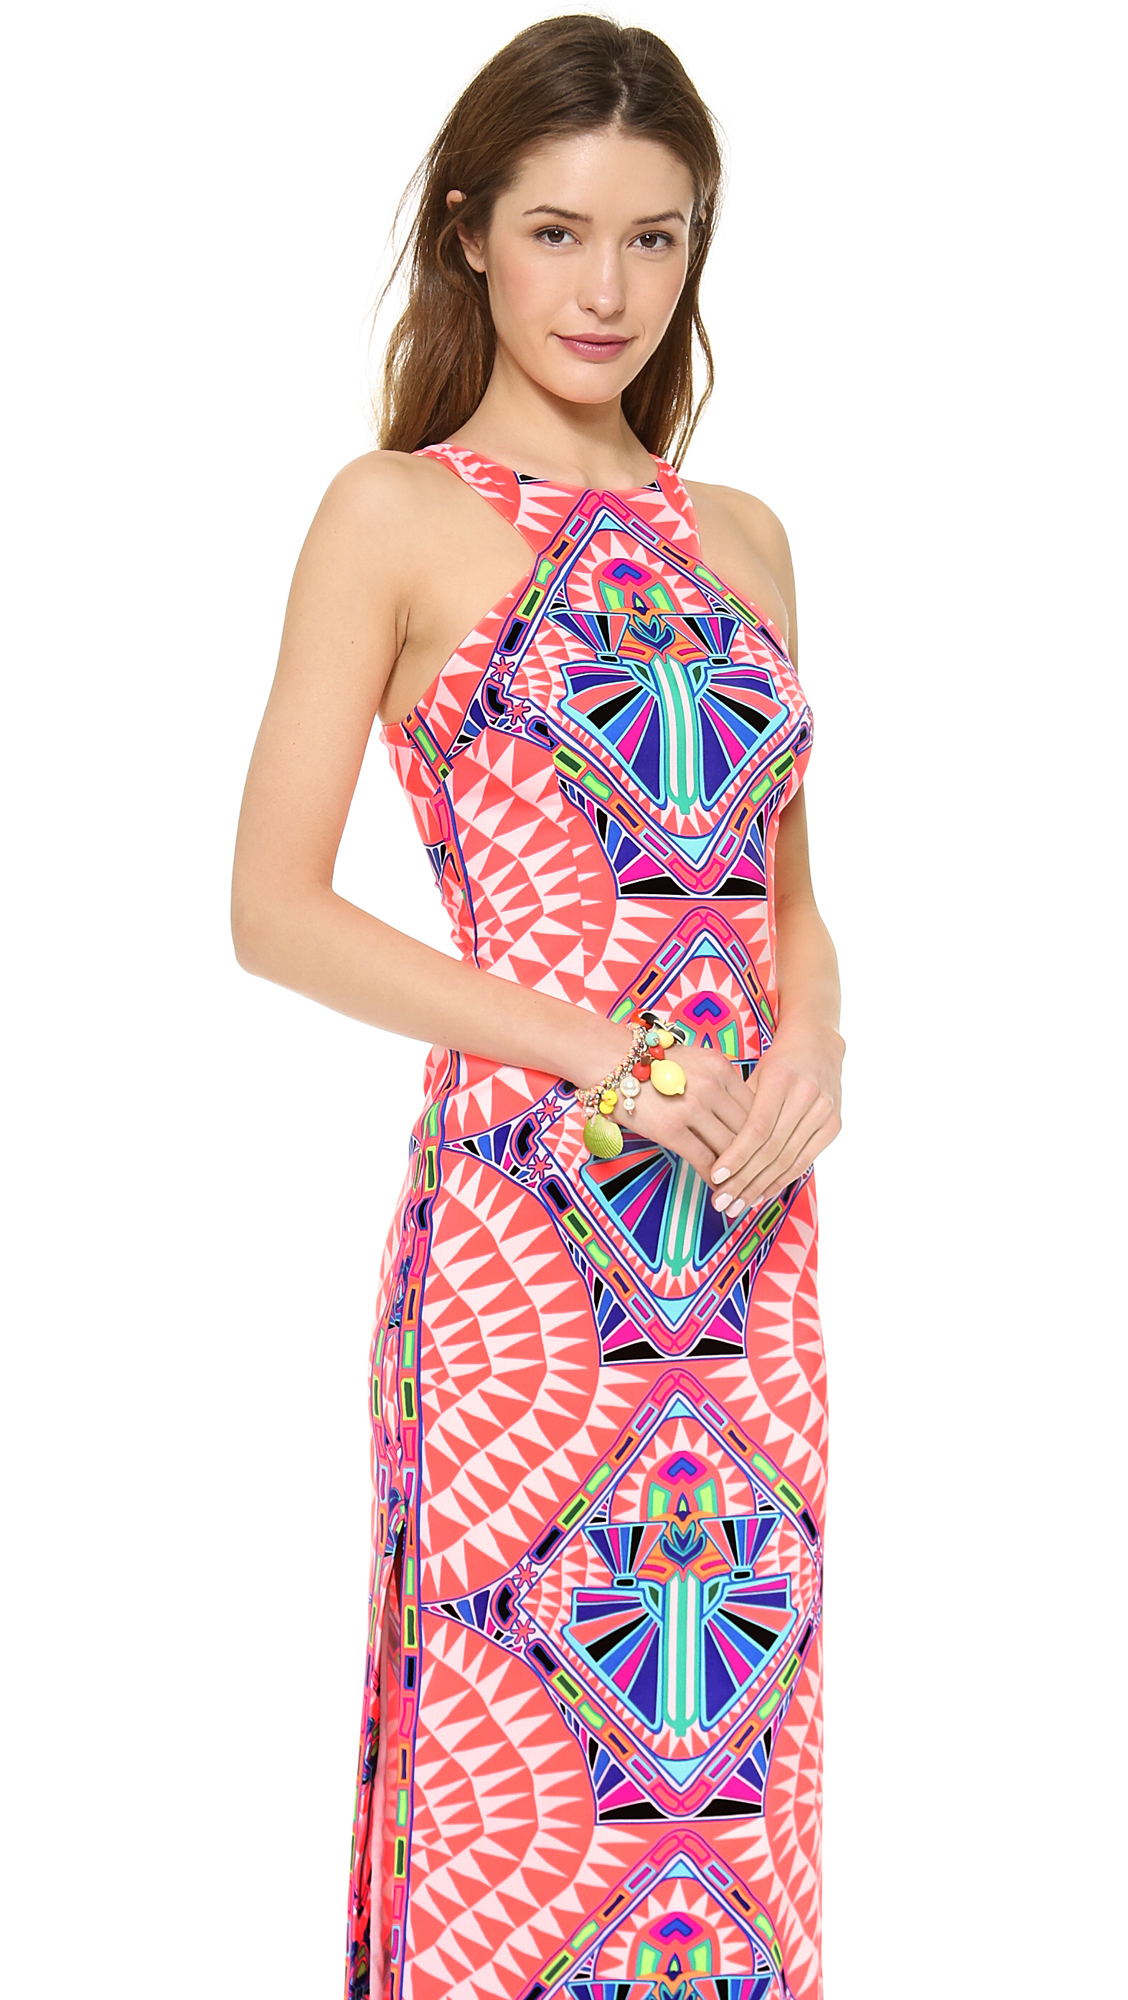 bfa138e05e53 Lyst - Mara Hoffman High Neck Column Maxi Dress Cosmic Fountain Coral